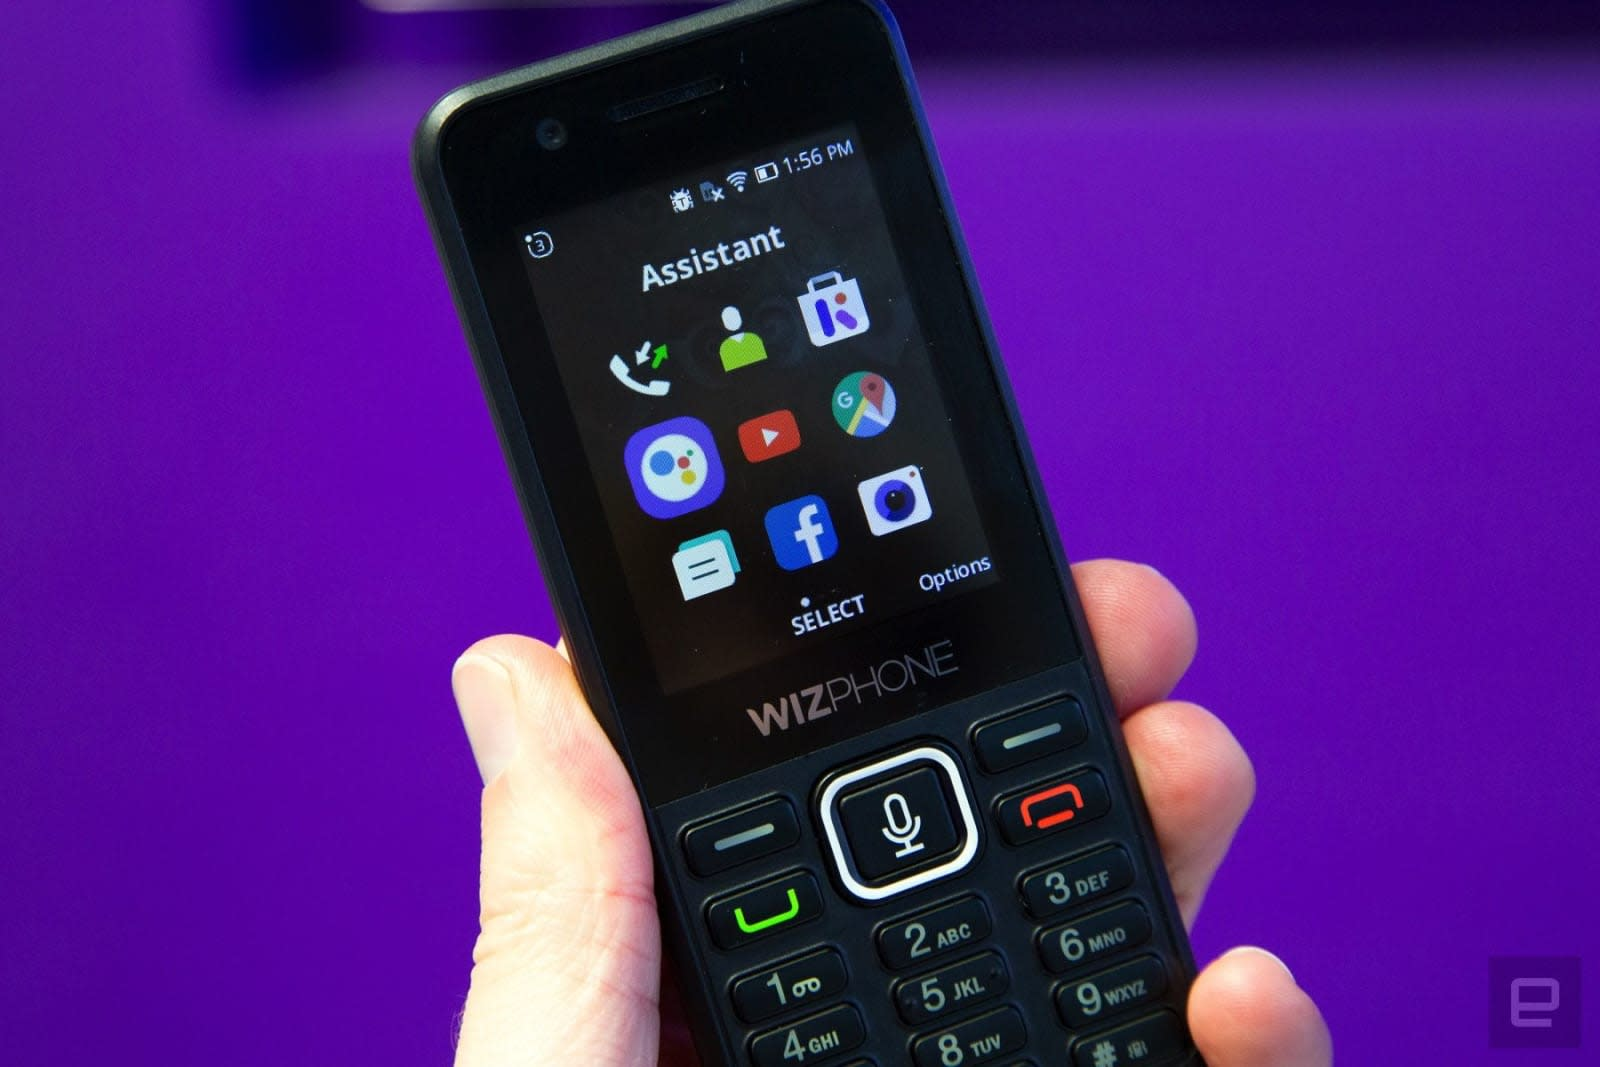 WhatsApp comes to millions of basic cellphones running KaiOS ...